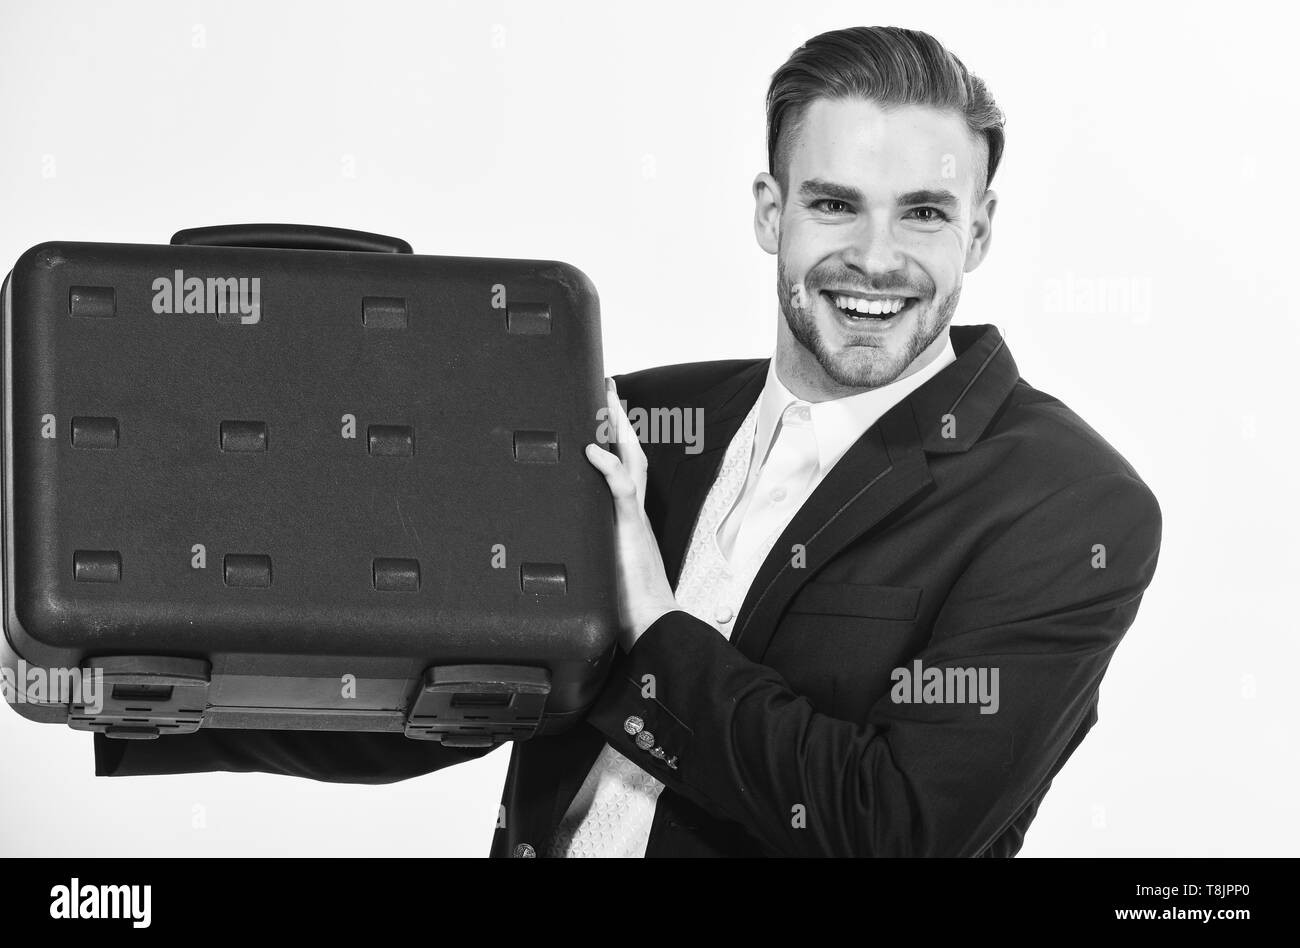 Business conference. Justification for proposed project or expected commercial benefit. Man hold briefcase. Business profit. Commercial offer. Businessman demonstrate briefcase. Business attributes. Stock Photo